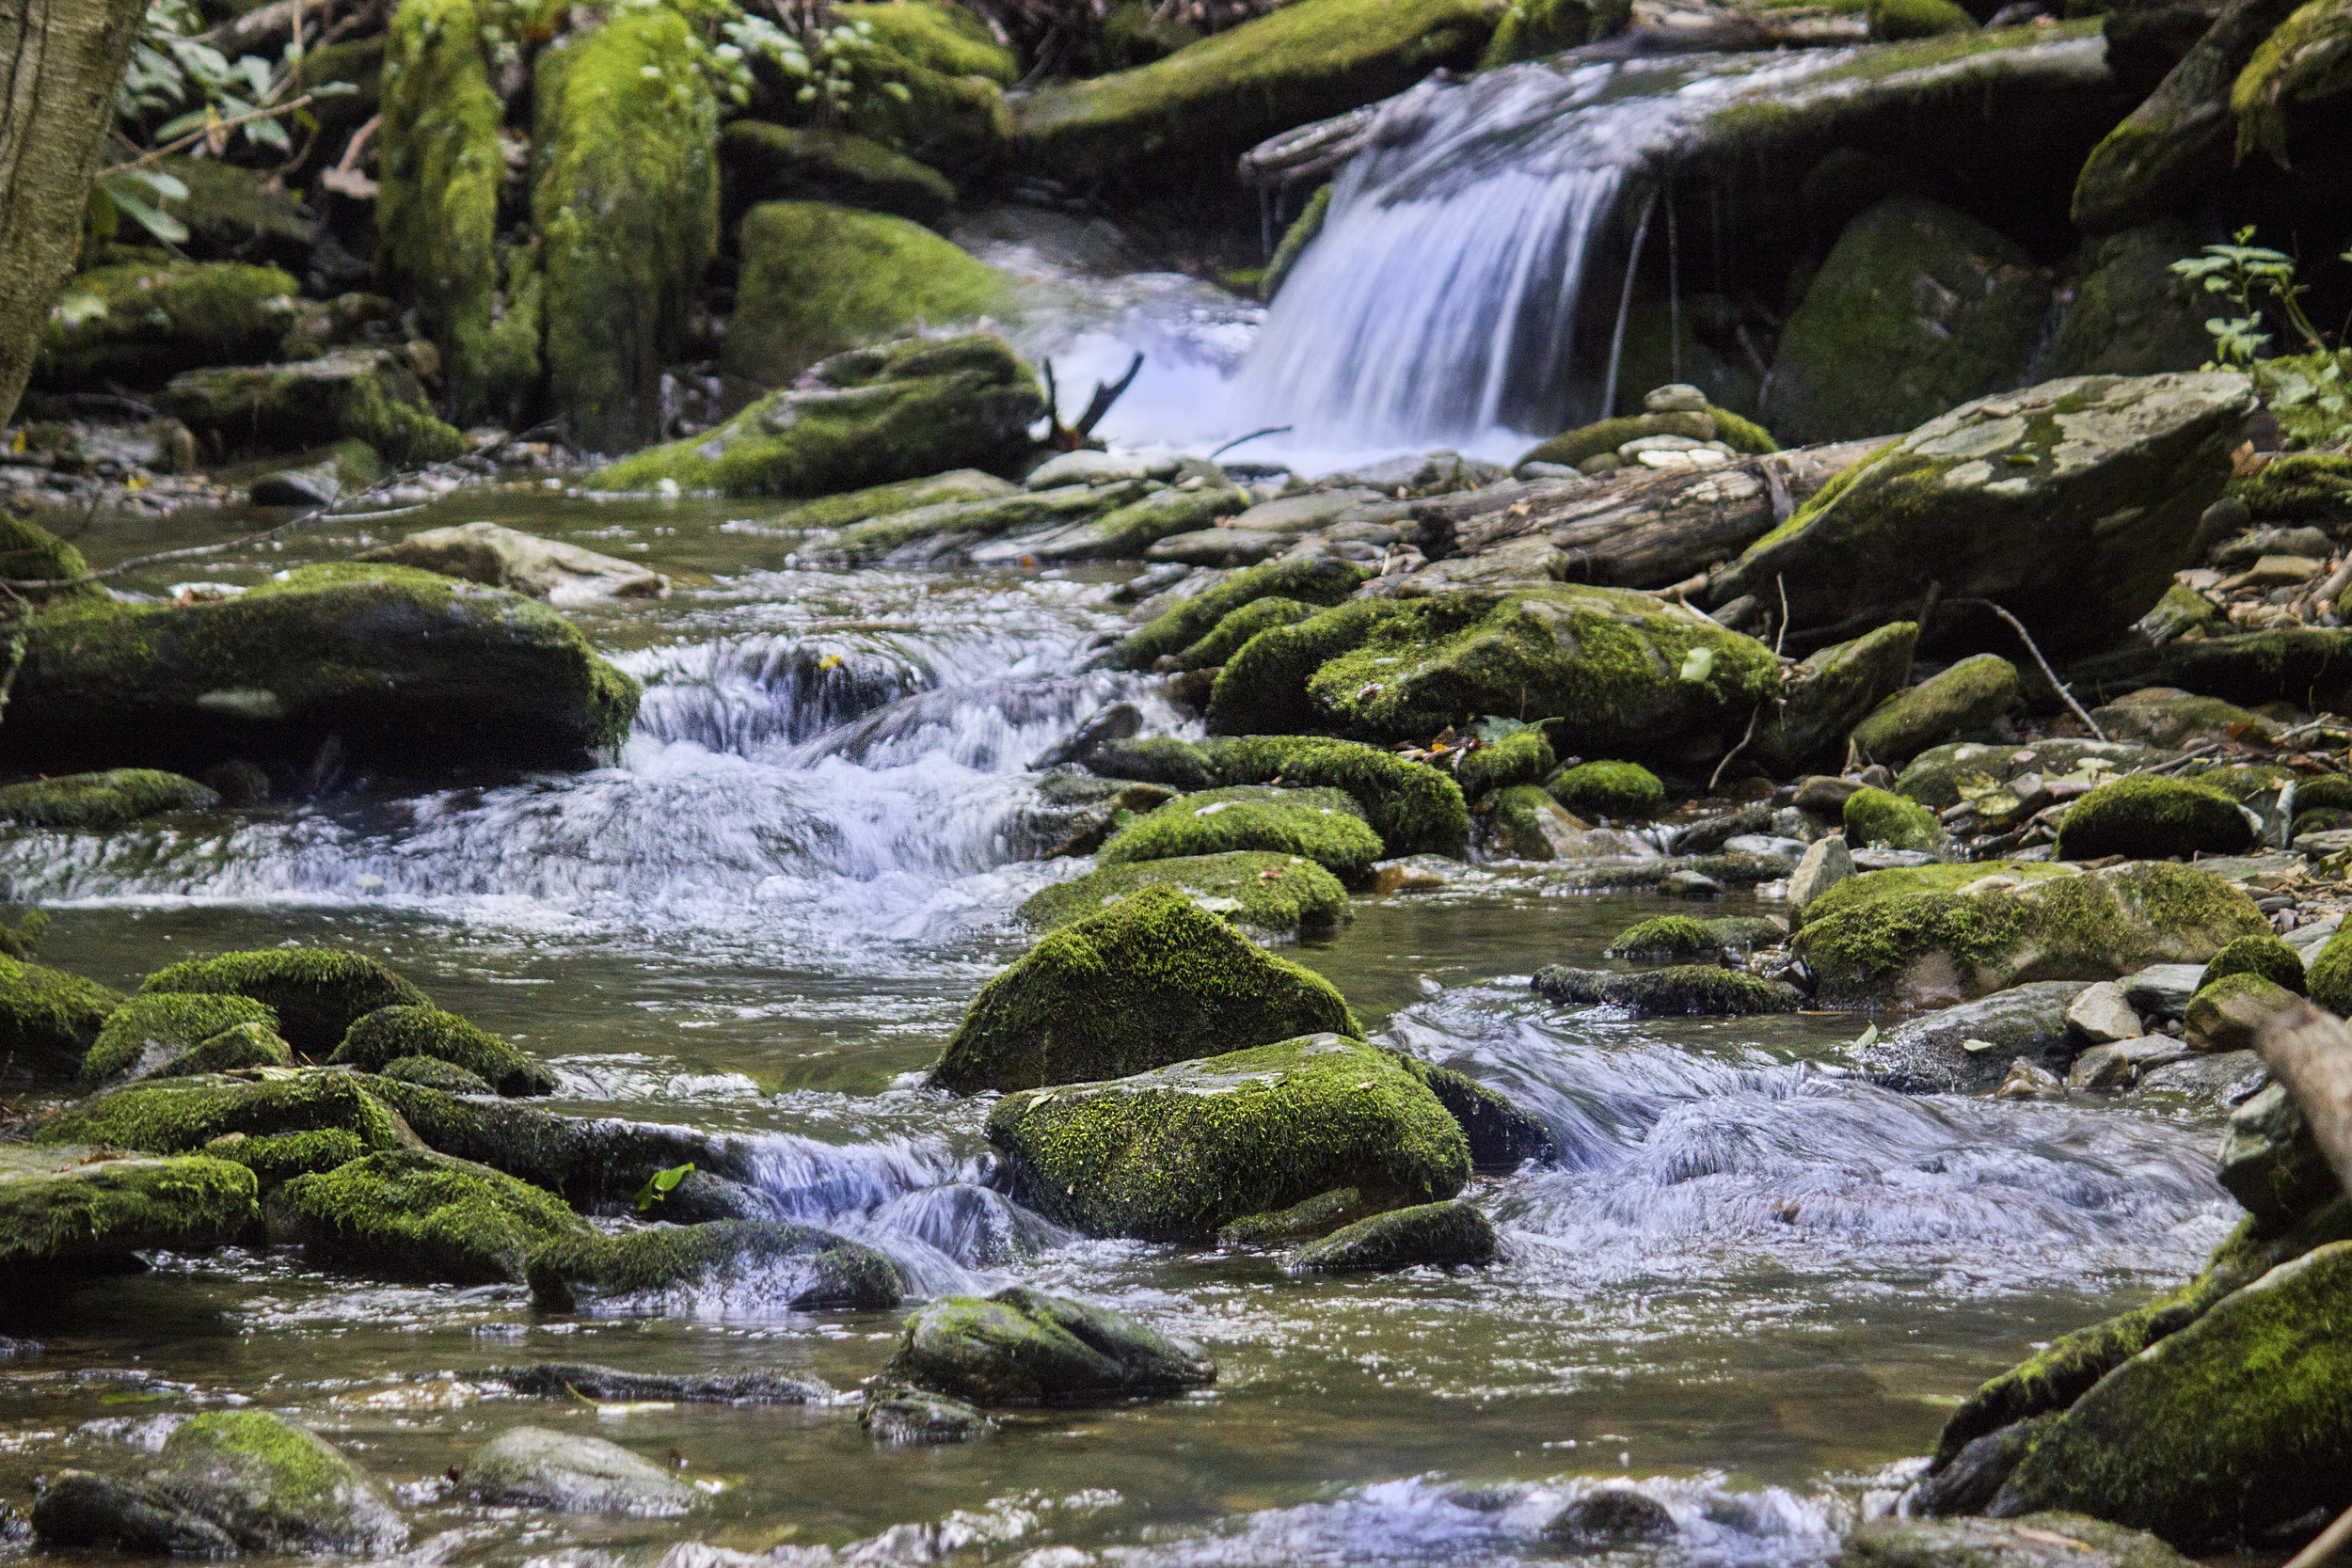 Flowing River Still Picture